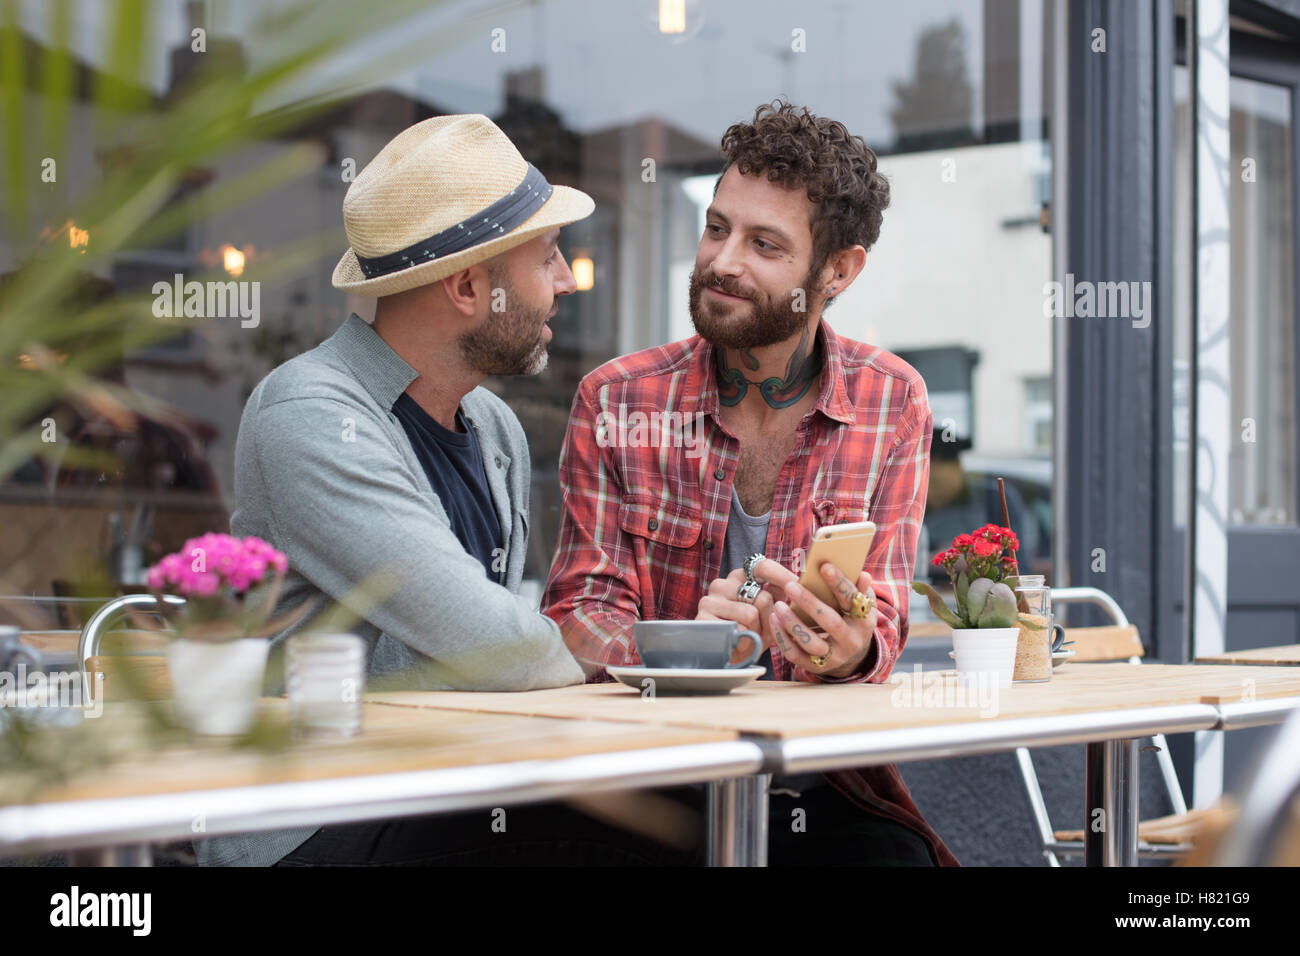 Gay couple sharing phone in cafe - Stock Image